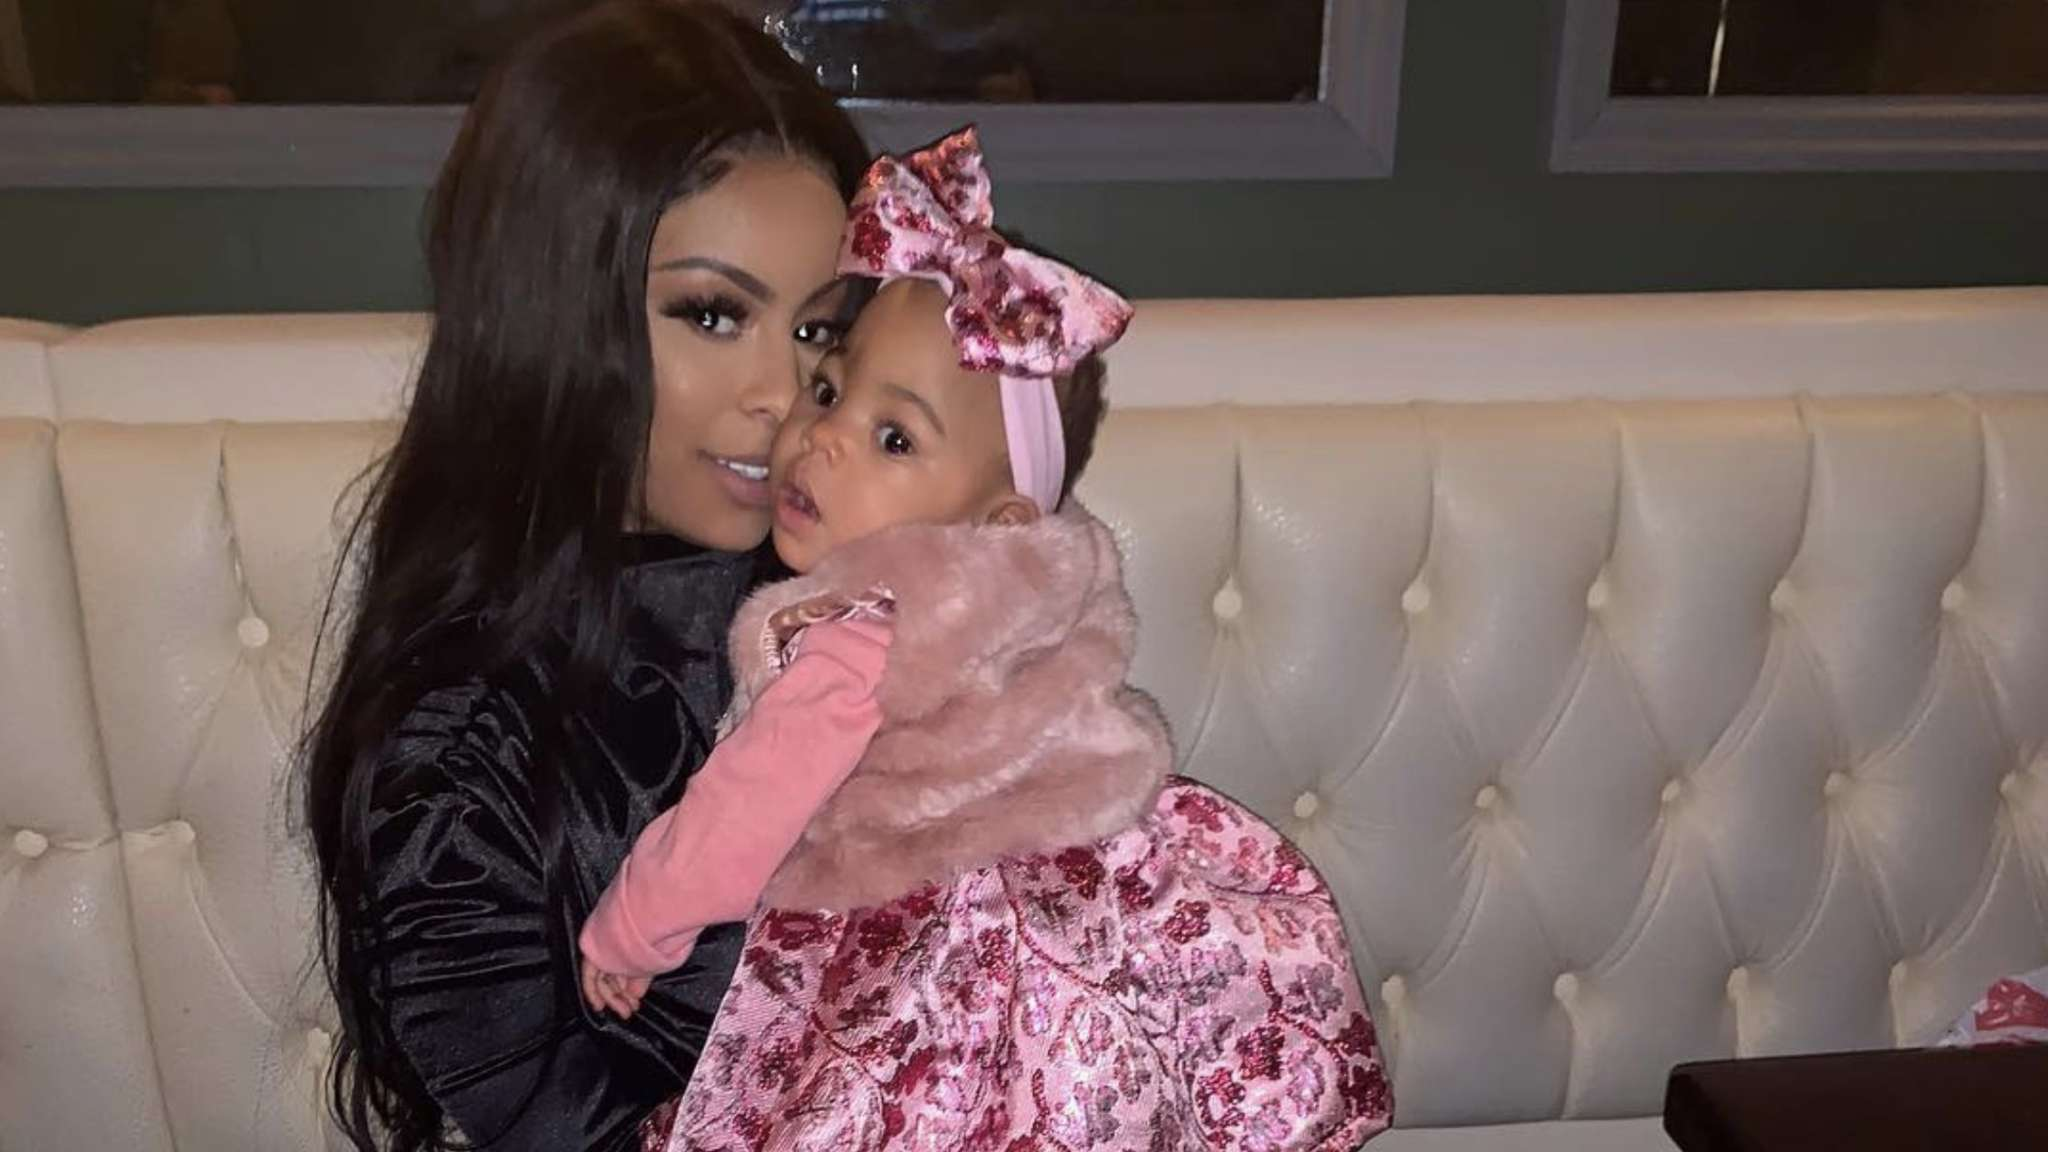 Alexis Skyy Leaves Little To The Imagination While Dancing With Her Baby Girl At Club Quarantine - Check Out The Video To See Her Having A Blast